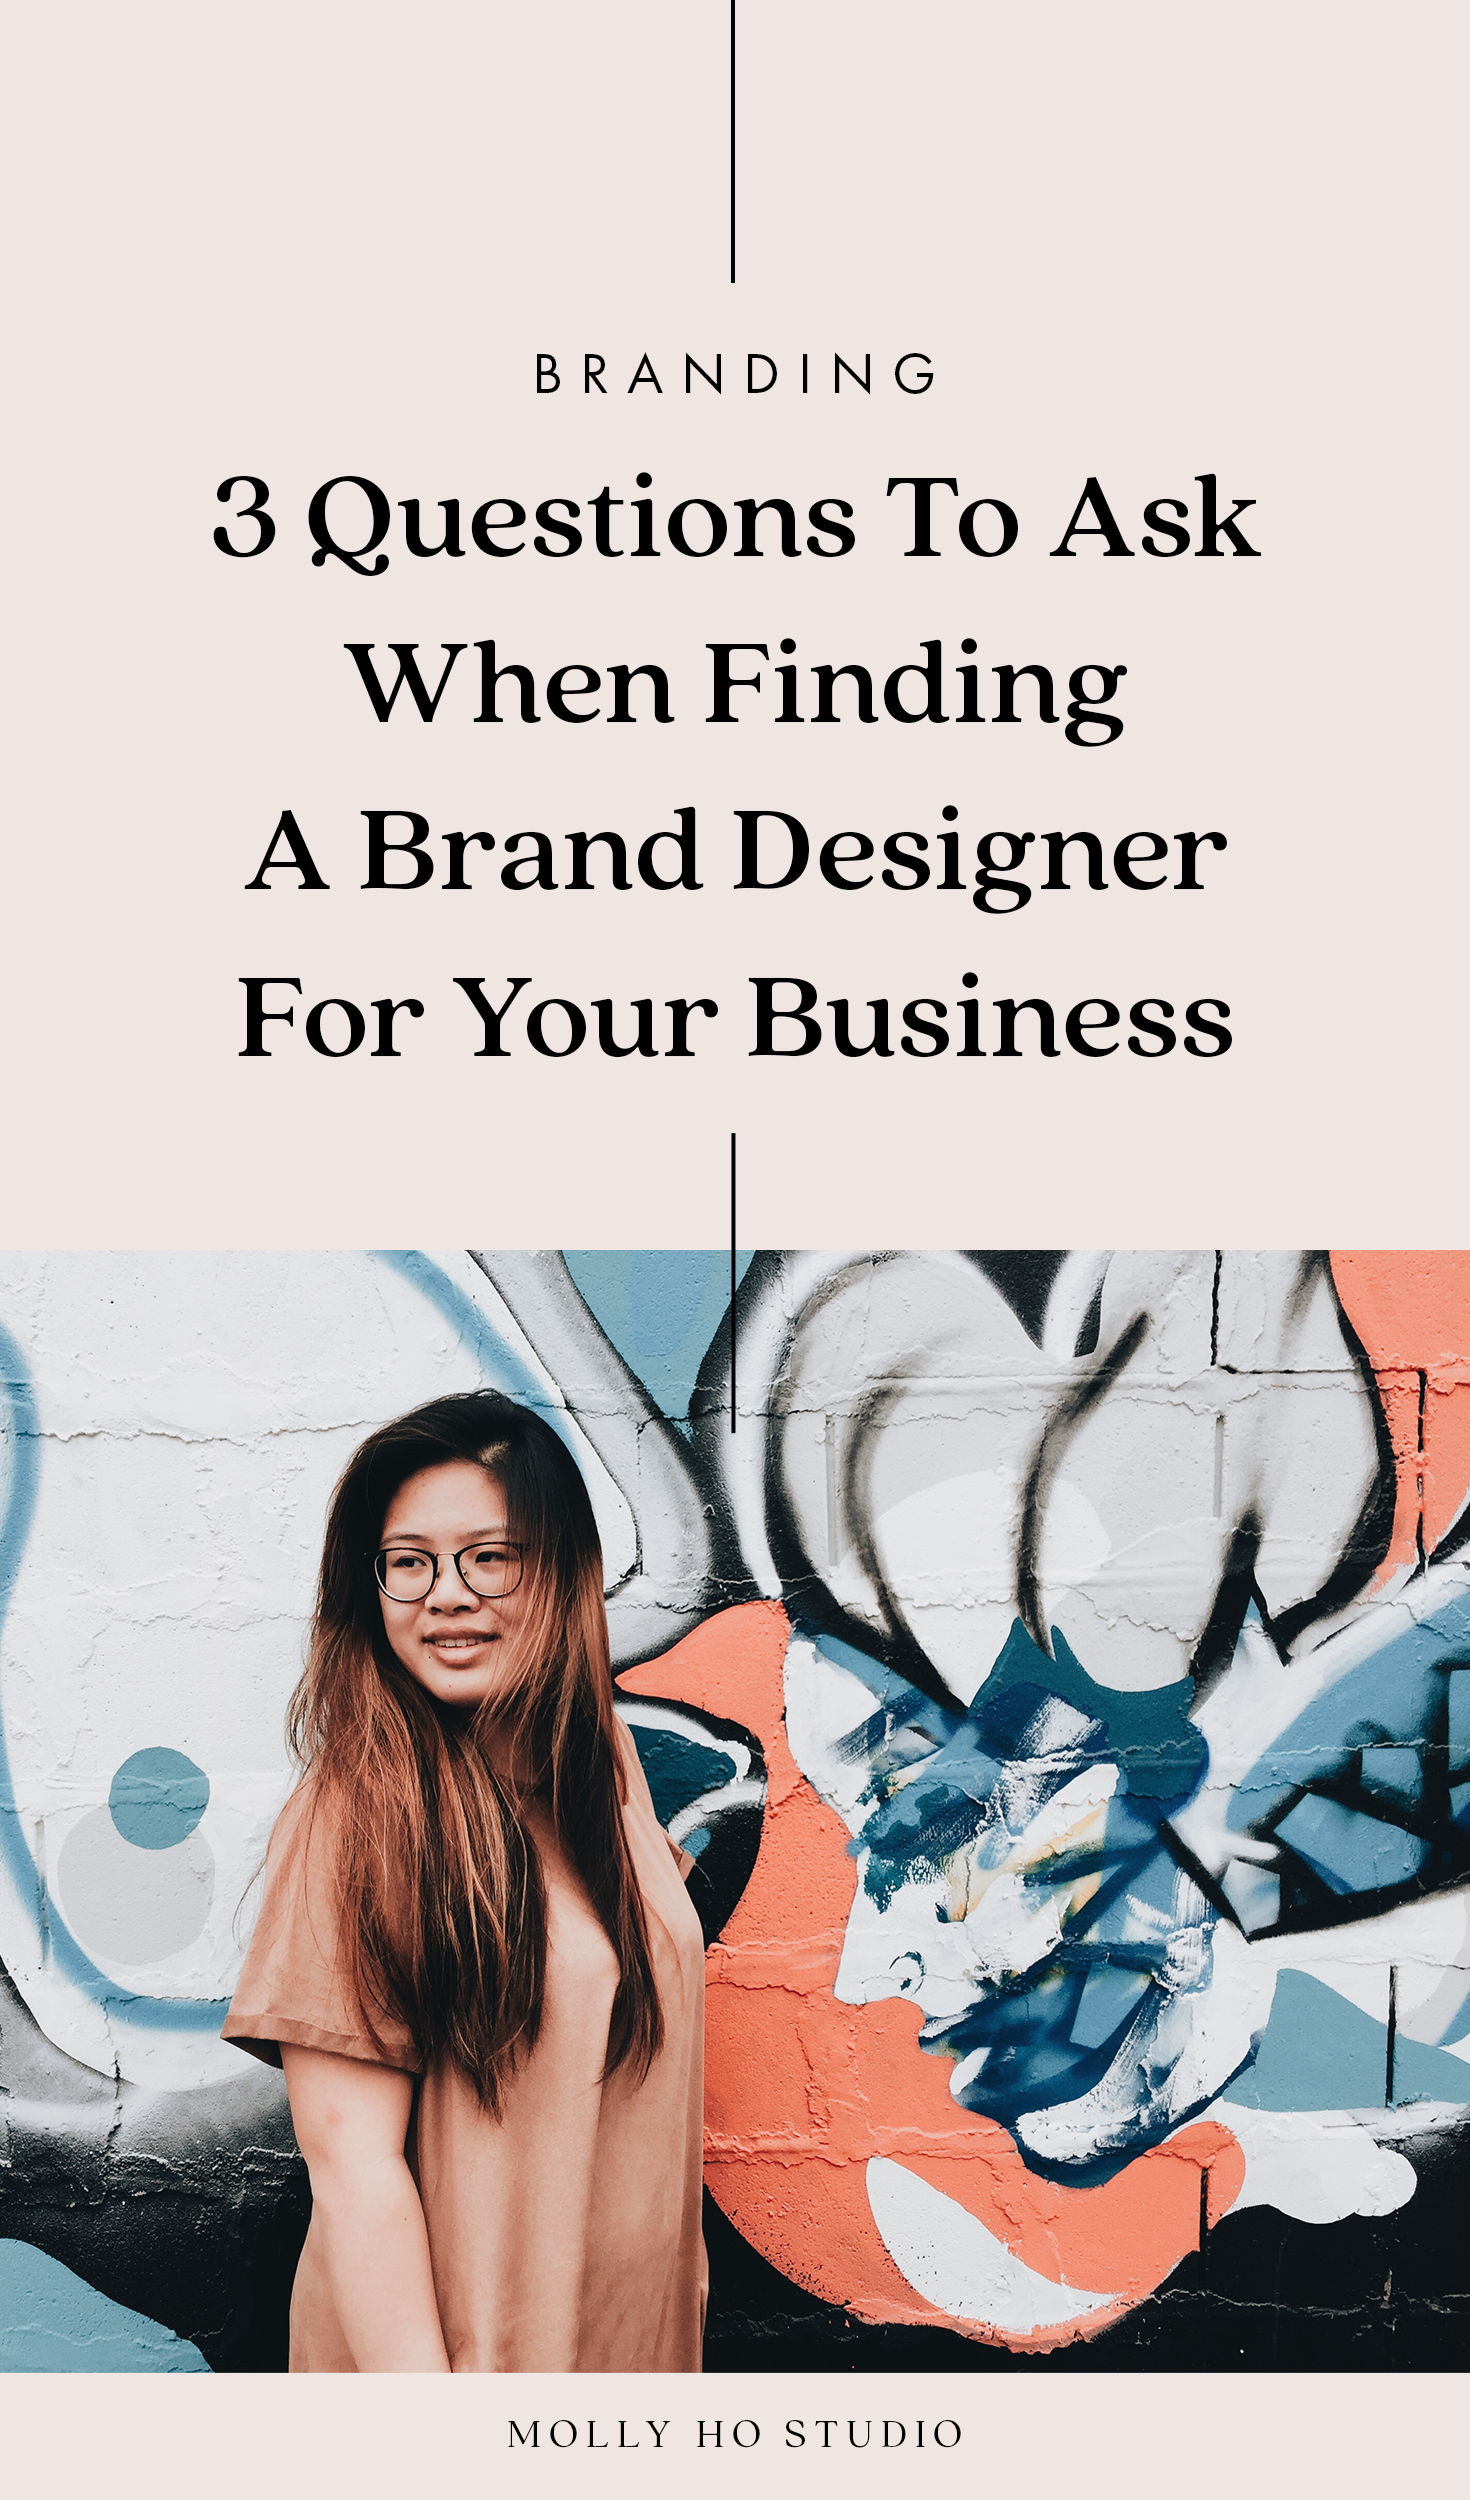 3 Questions To Ask When Finding A Brand Designer For Your Business | How To Find A Brand and Graphic Designer for Your Business | Branding Design Identity | Brand Design Process | Small Business Advice | Personal Branding for Creative Female Entrepreneurs | Digital Marketing and Social Media | Finding Your Ideal Client Avatar and Target Market | Creative Entrepreneurship | Branding and Business Tips | Molly Ho Studio